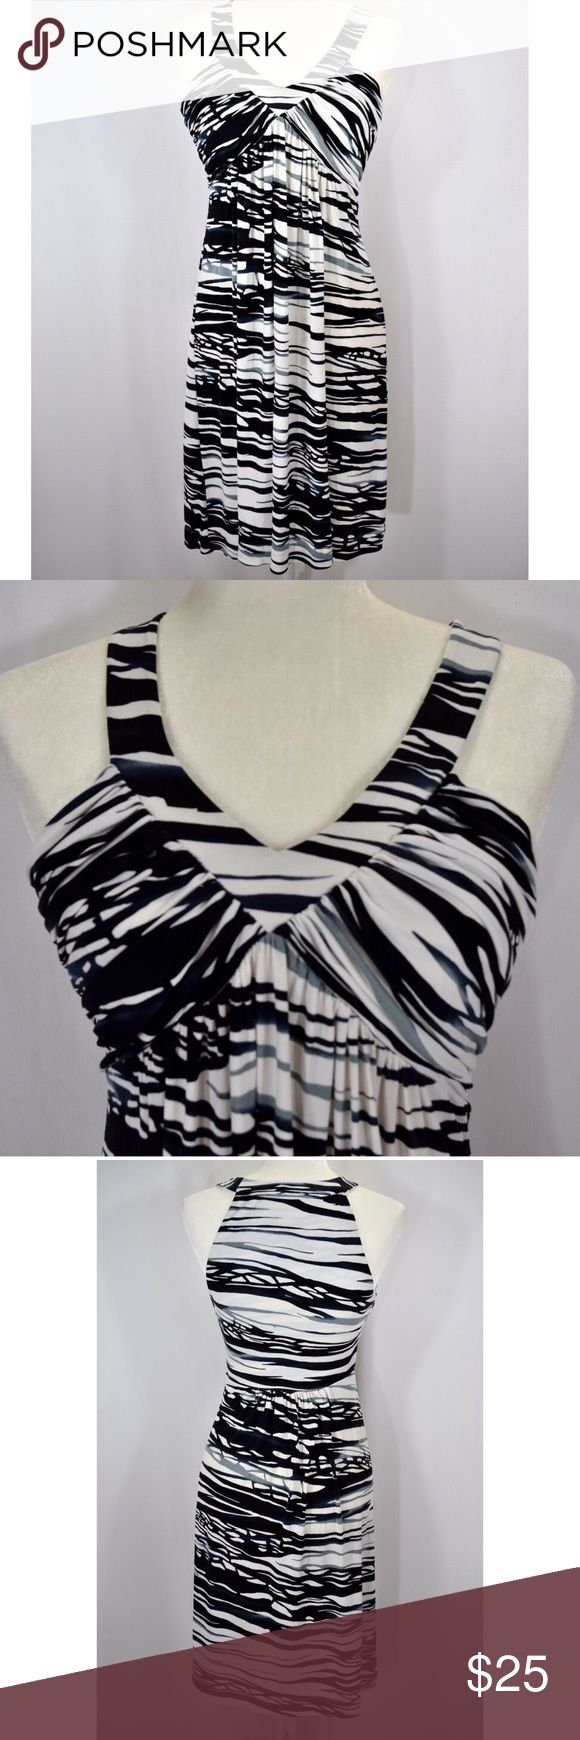 Beautiful Calvin Klein summer dress Gorgeous and flattering Calvin Klein summer dress🎀White, black, and gray pattern🎀Size 6🎀95% polyester and 5% spandex🎀Great condition-very gently used🎀Tag says dry clean, but I wash it on delicate and hang dry-I don't think that polyester needs to be dry cleaned!🎀There is a tiny spot that you can hardly see on the back.  I took a photo of it, but it is so small that it barely shows up.  I always disclose every little thing!🎀Smoke and pet free home…